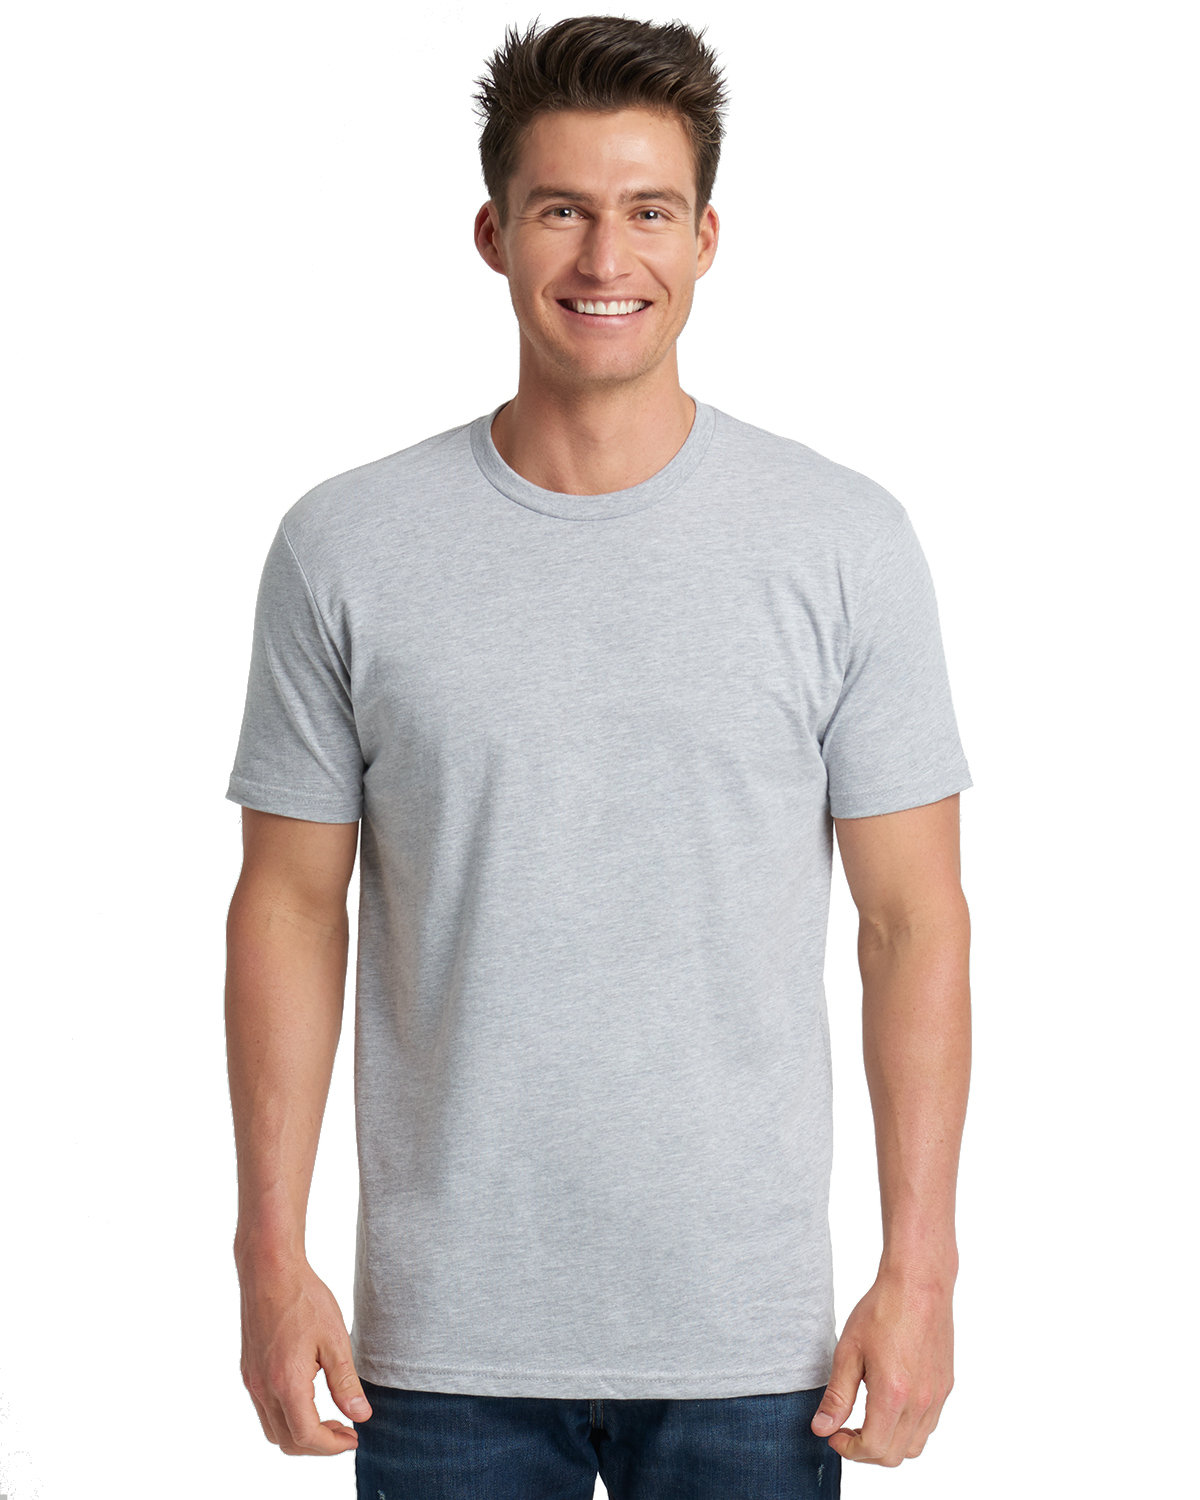 Next Level Men's Made in USA Cotton Crew HEATHER GRAY